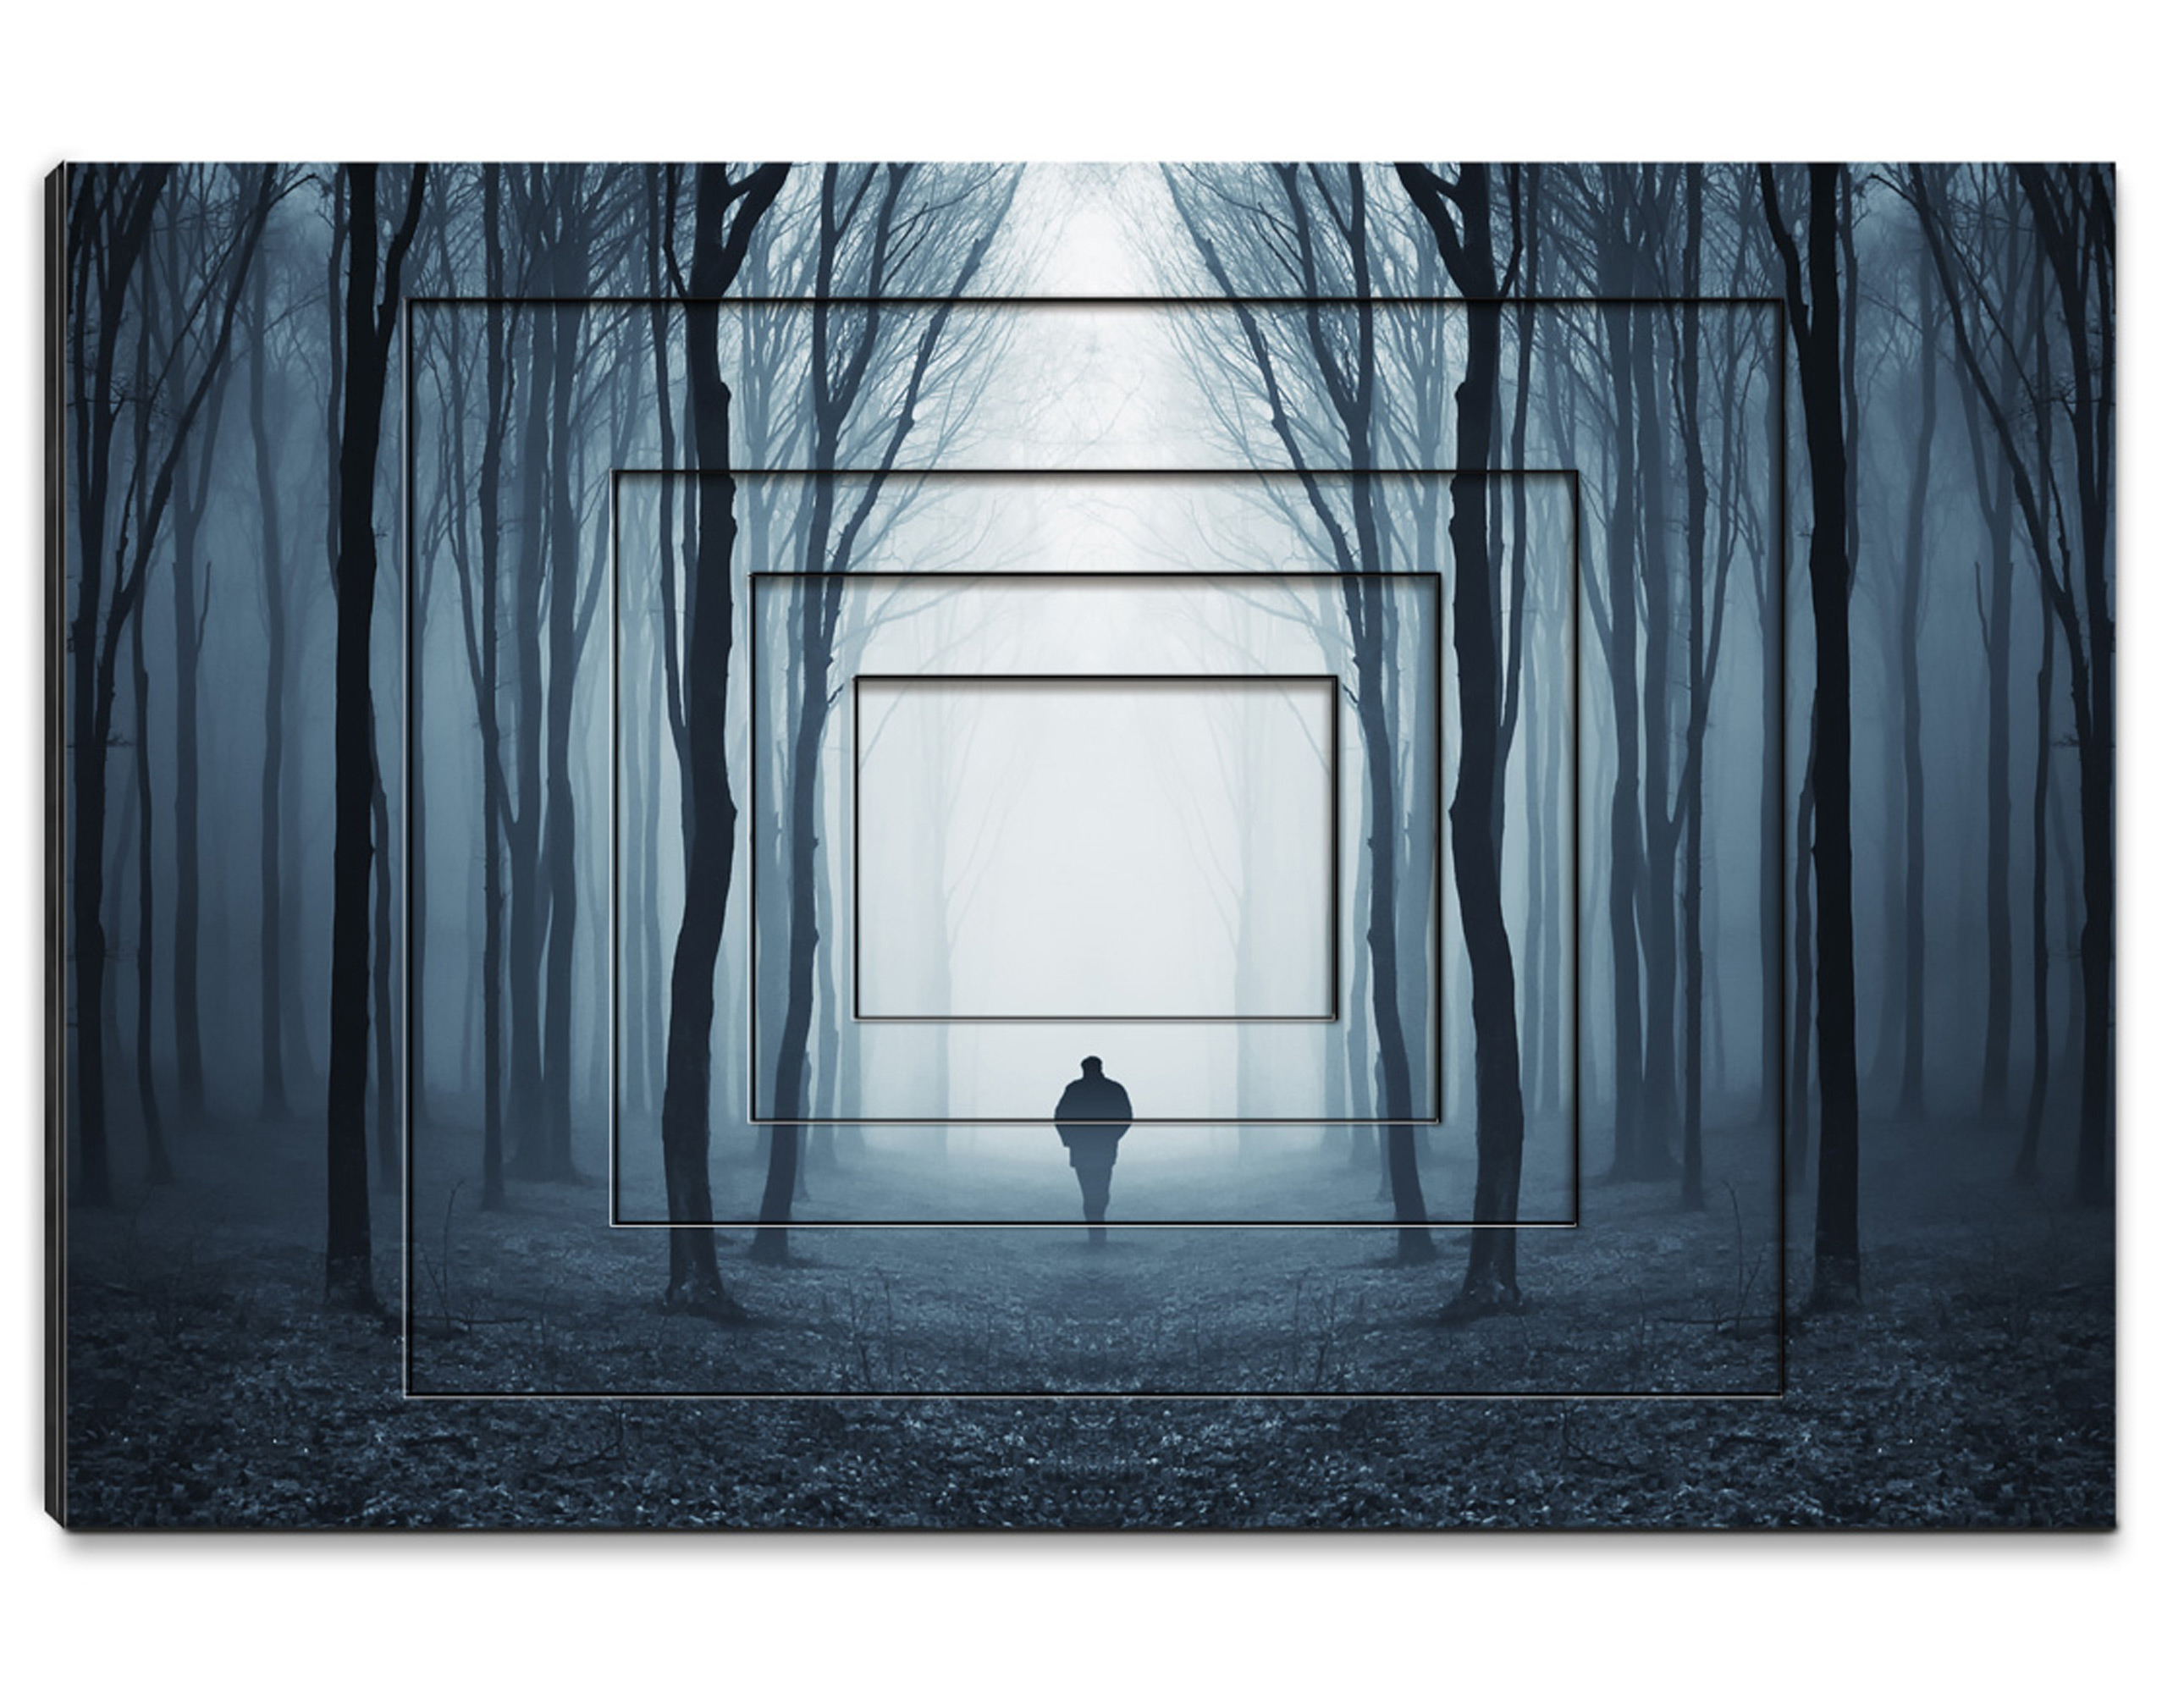 """The Woods - Forest Walk, Wanderer, Black and White 23.8\"""" x 15.8\"""" Print on Wood"""